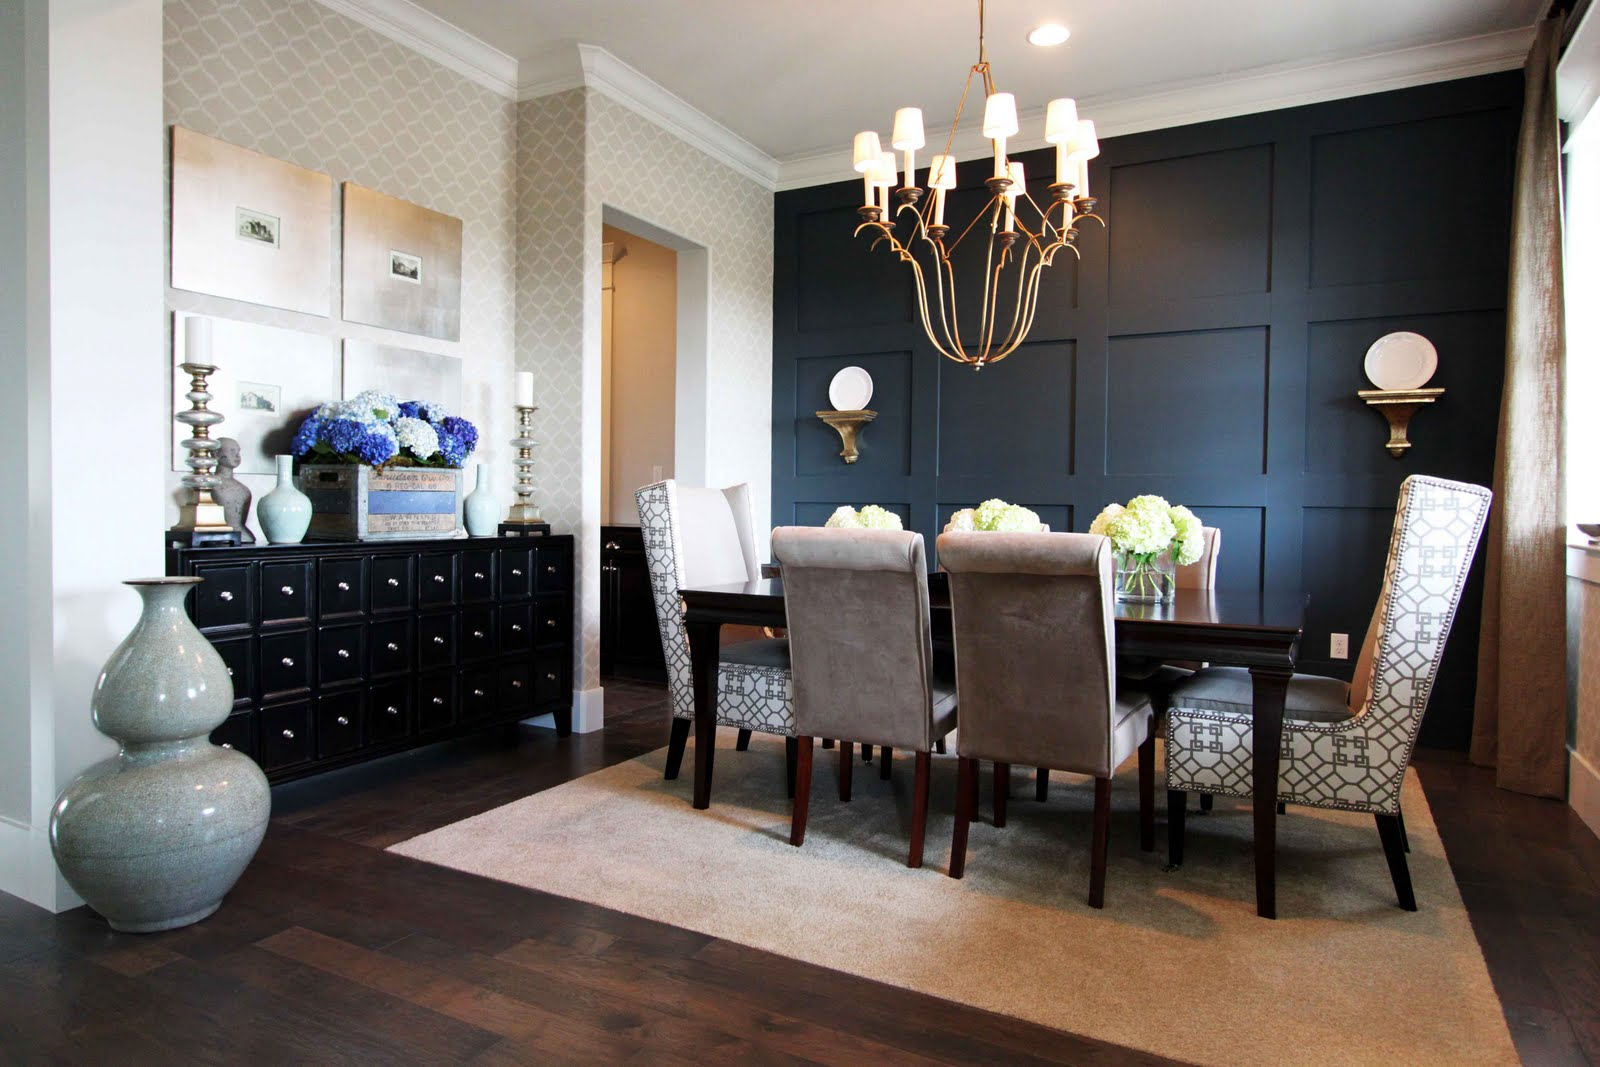 Stiles fischer interior design hgtv showhouse showdown for Dining room wall design